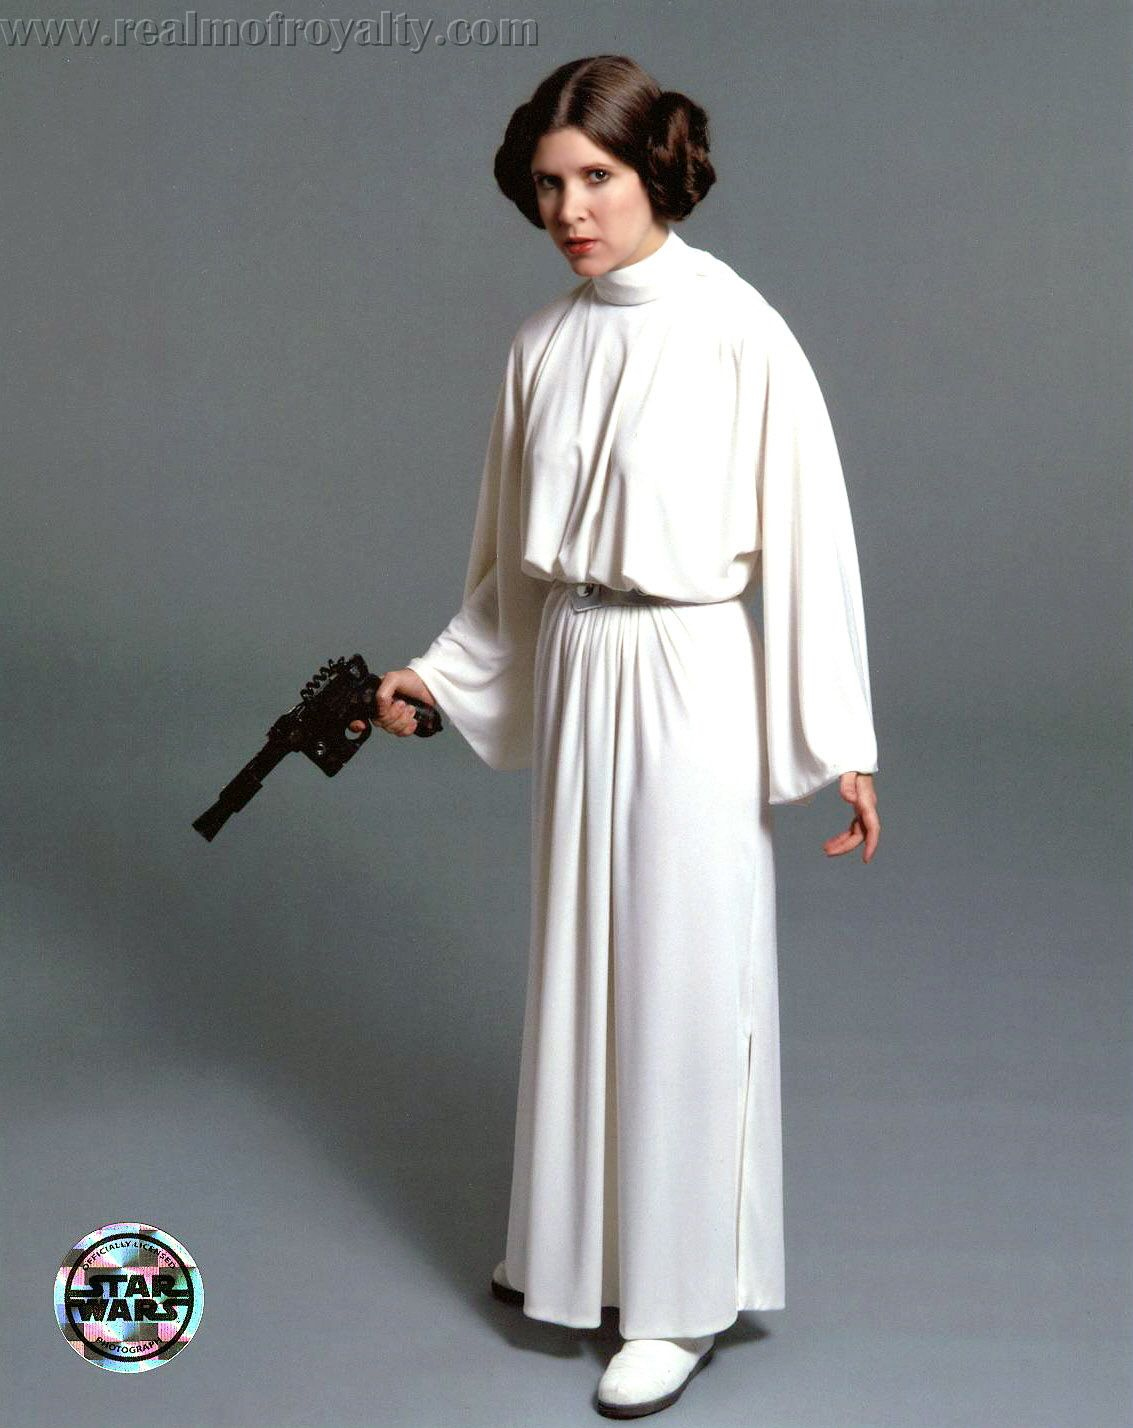 Princess Leia White Dress Carrie Fisher Google Search